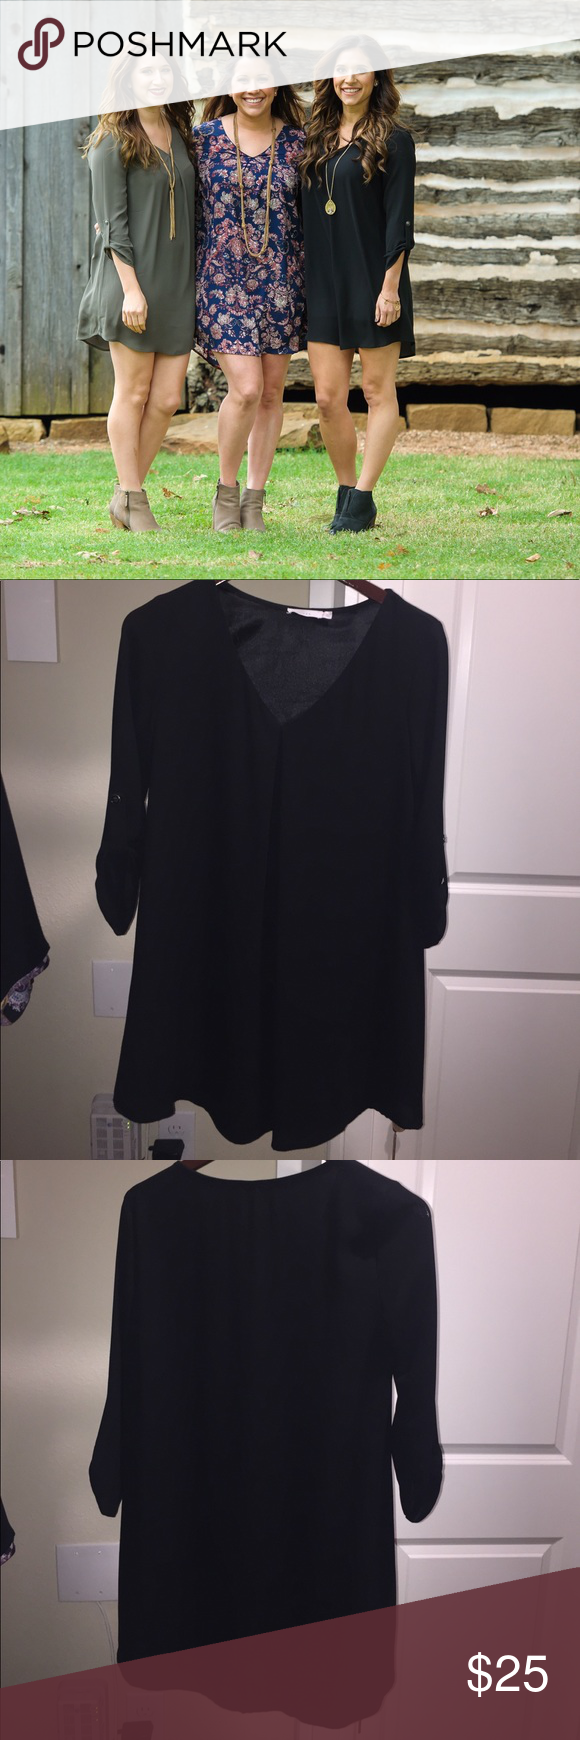 Lush black dress simple lush black dress worn once lush dresses